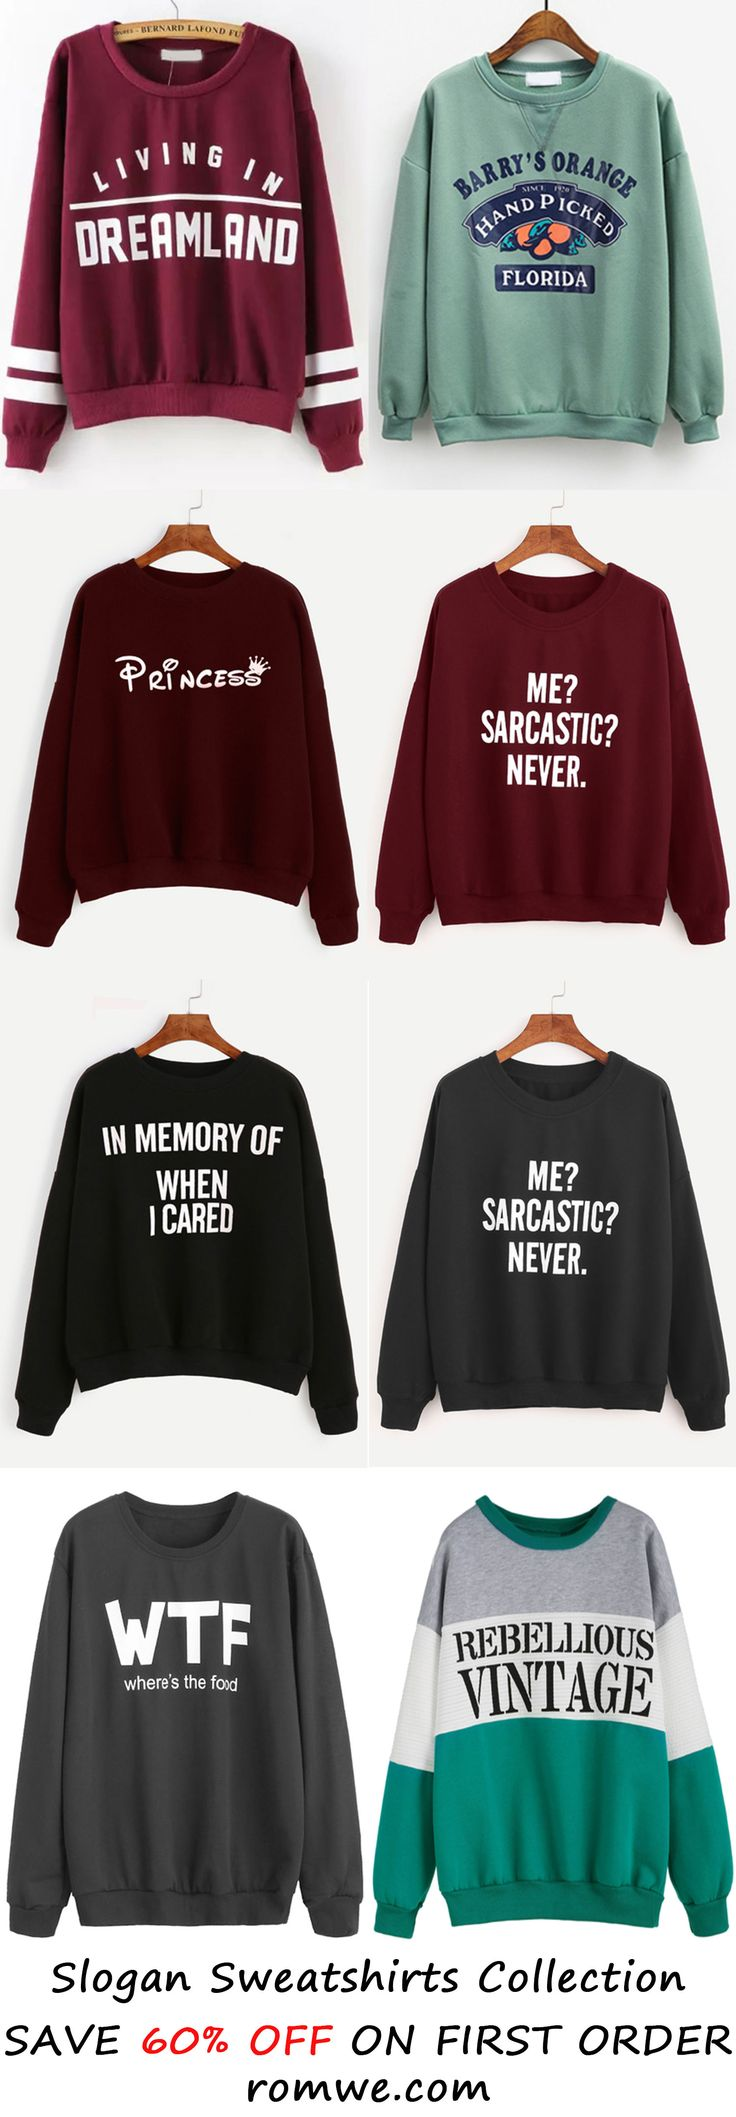 Up to 90% Off - Slogan Sweatshirts from romwe.com https://twitter.com/ShoesEgminfmn/status/895096209521557504